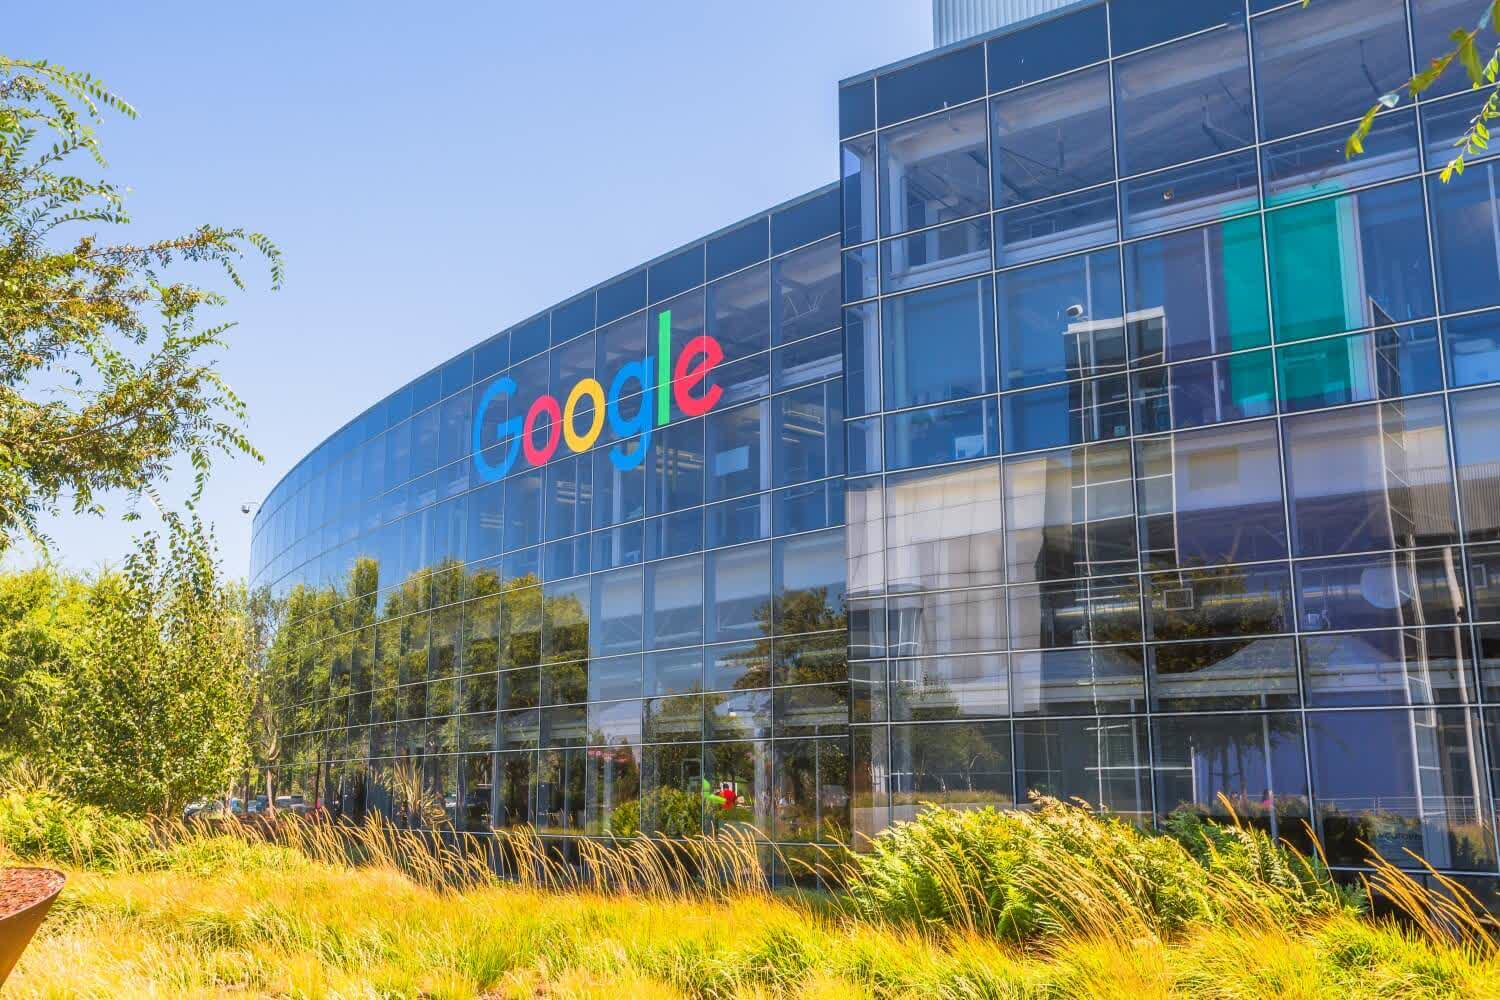 Google employees who choose to work from home could see pay cuts based on where they live